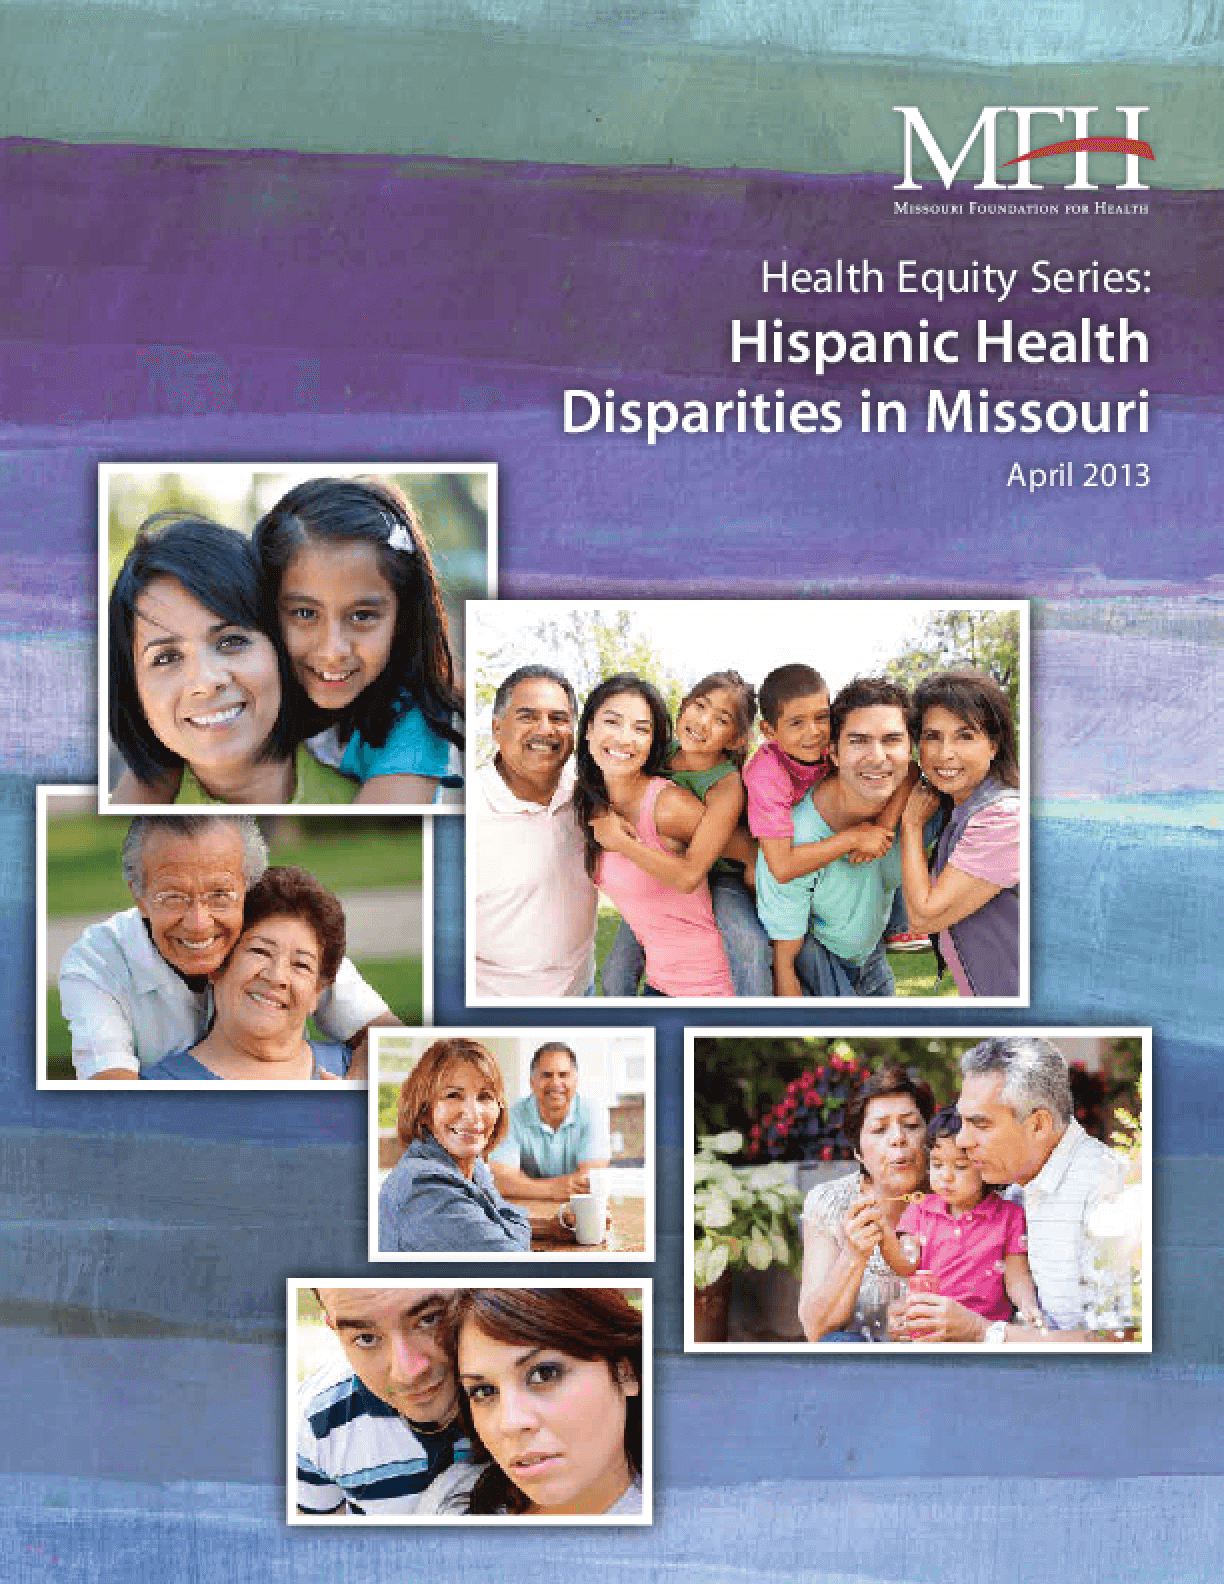 Health Equity Series: Hispanic Health Disparities in Missouri